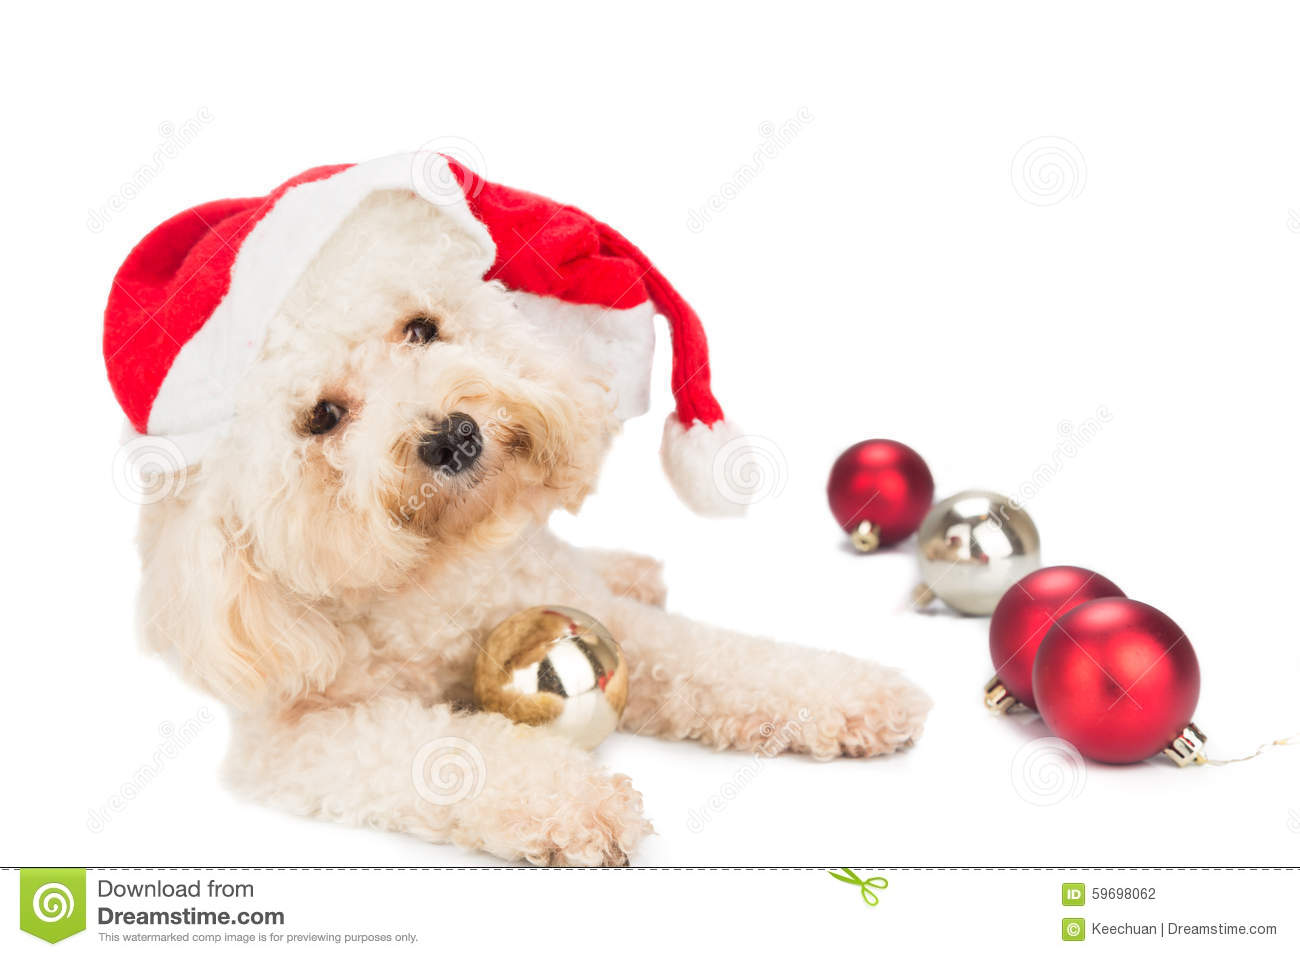 Maltese christmas ornaments - Cute Poodle Dog In Santa Costume Posing With Christmas Ornaments